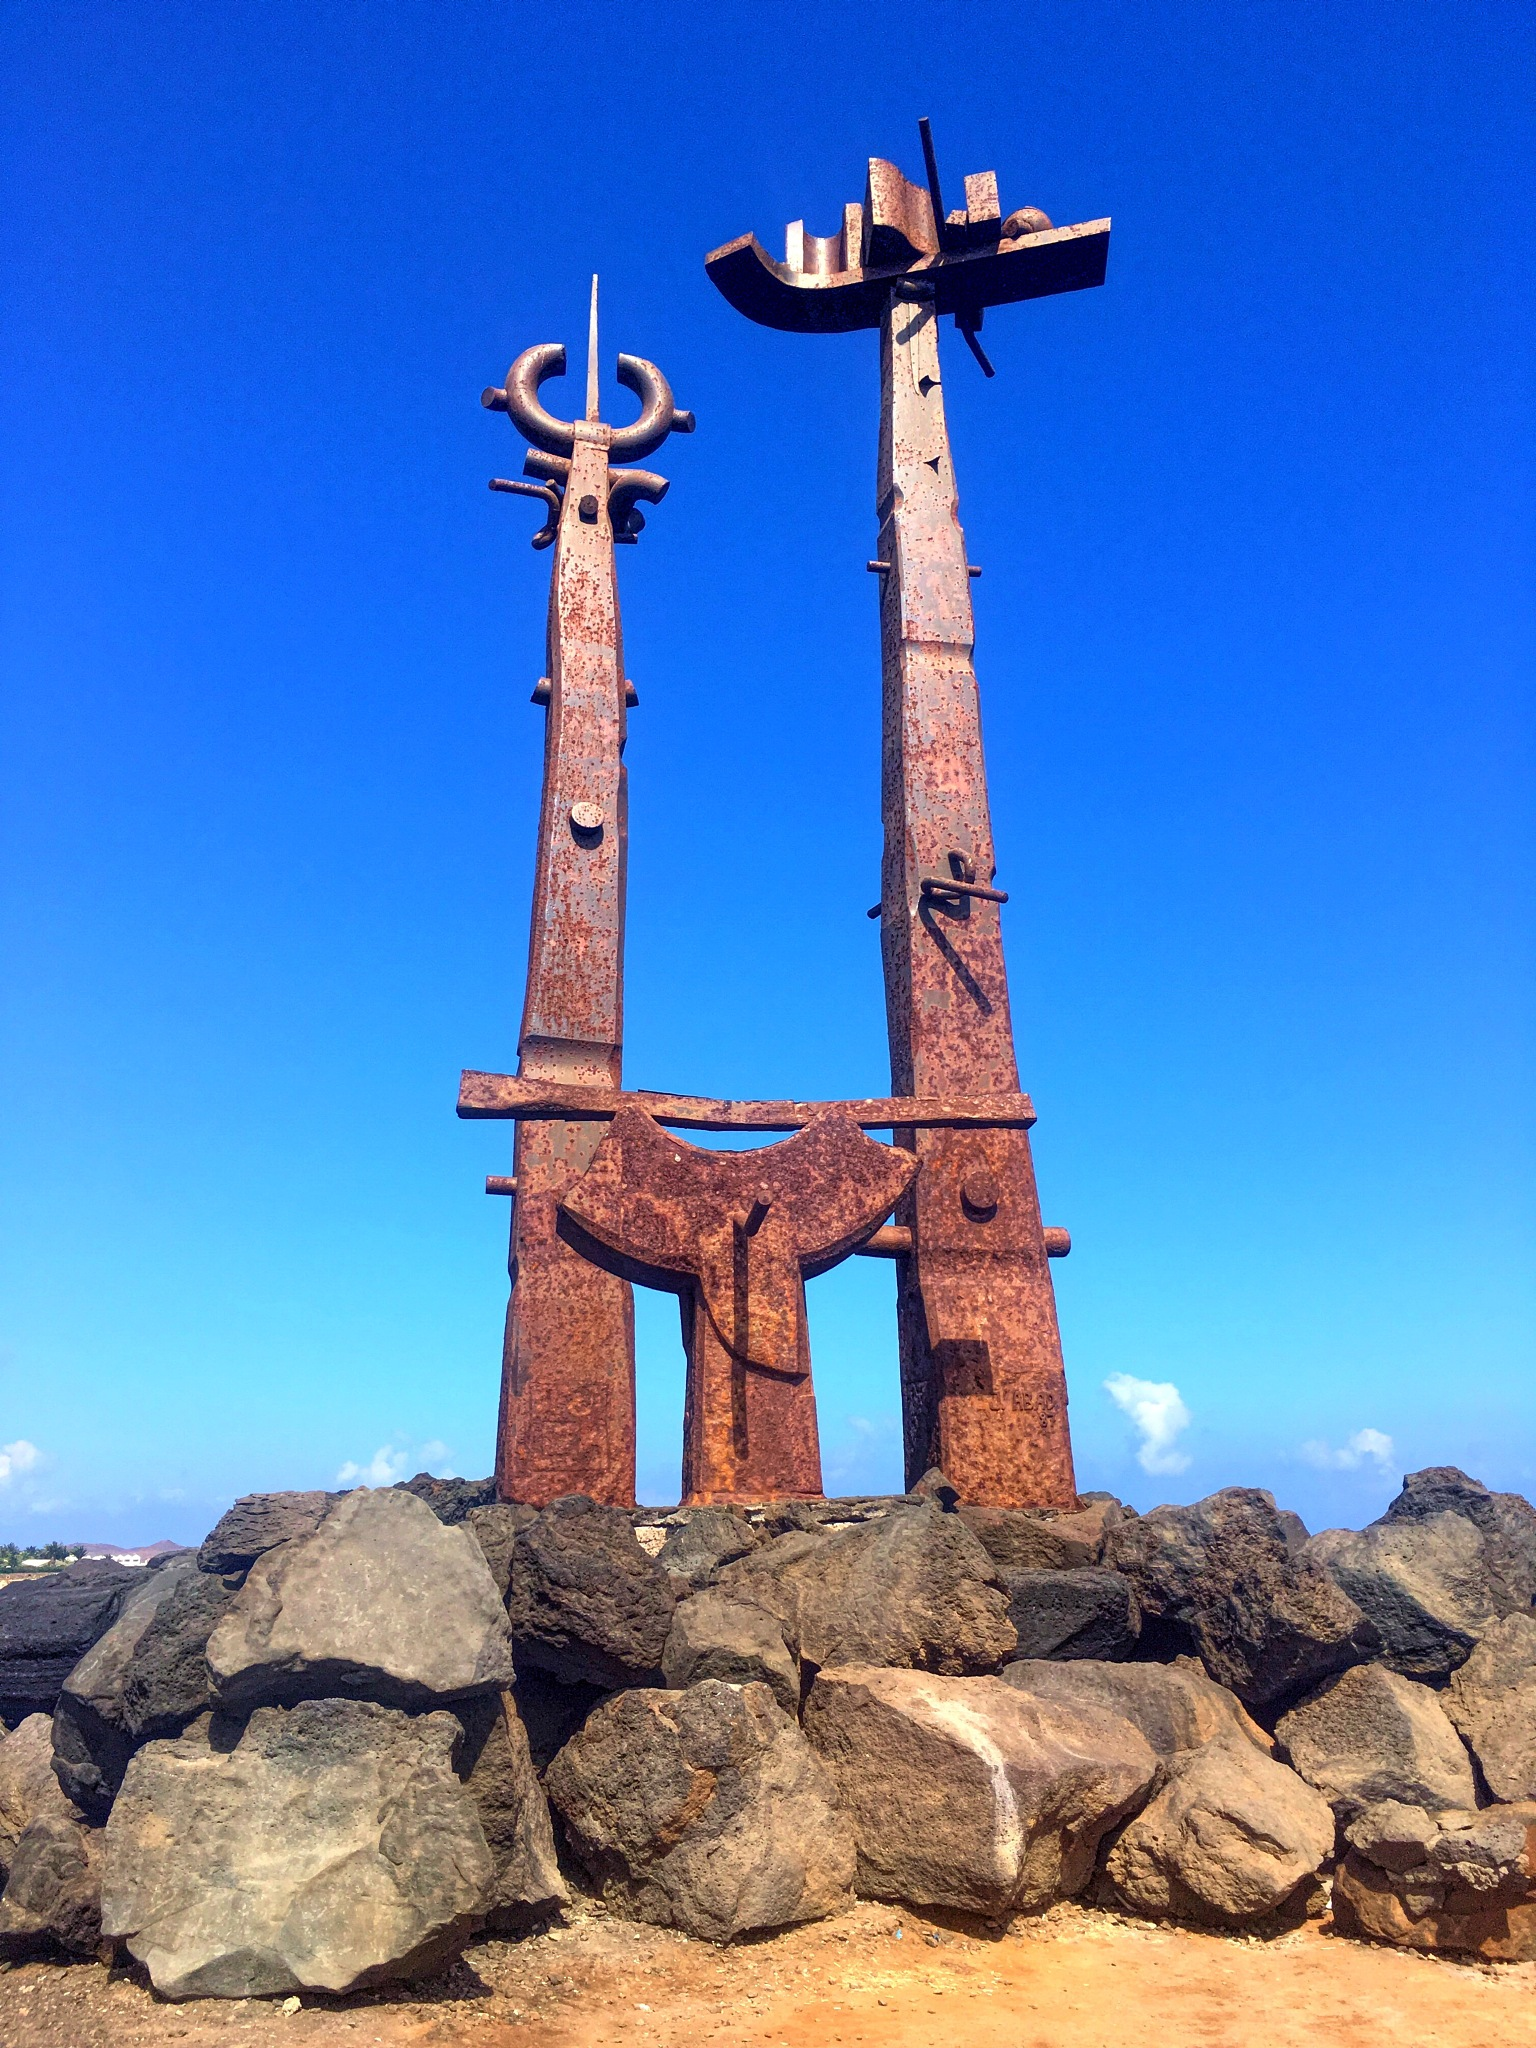 Costa Teguise Sculpture  by Patrick Curley